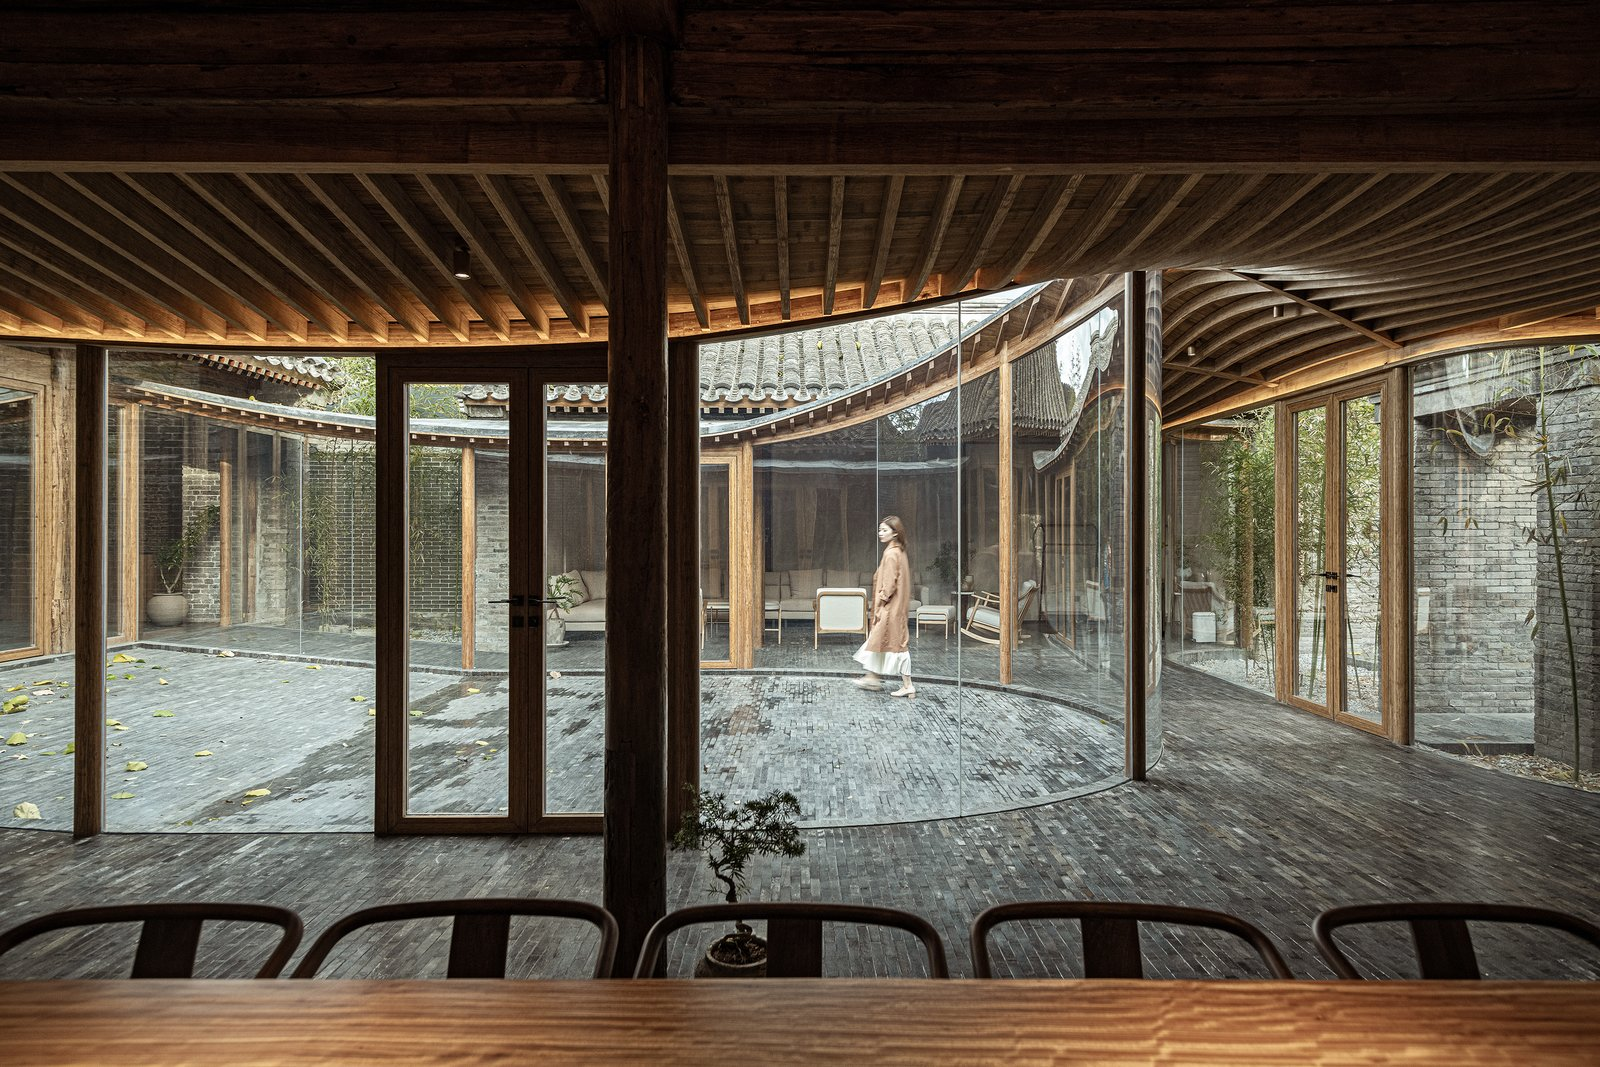 Before & After: Qishe Courtyard by Archstudio